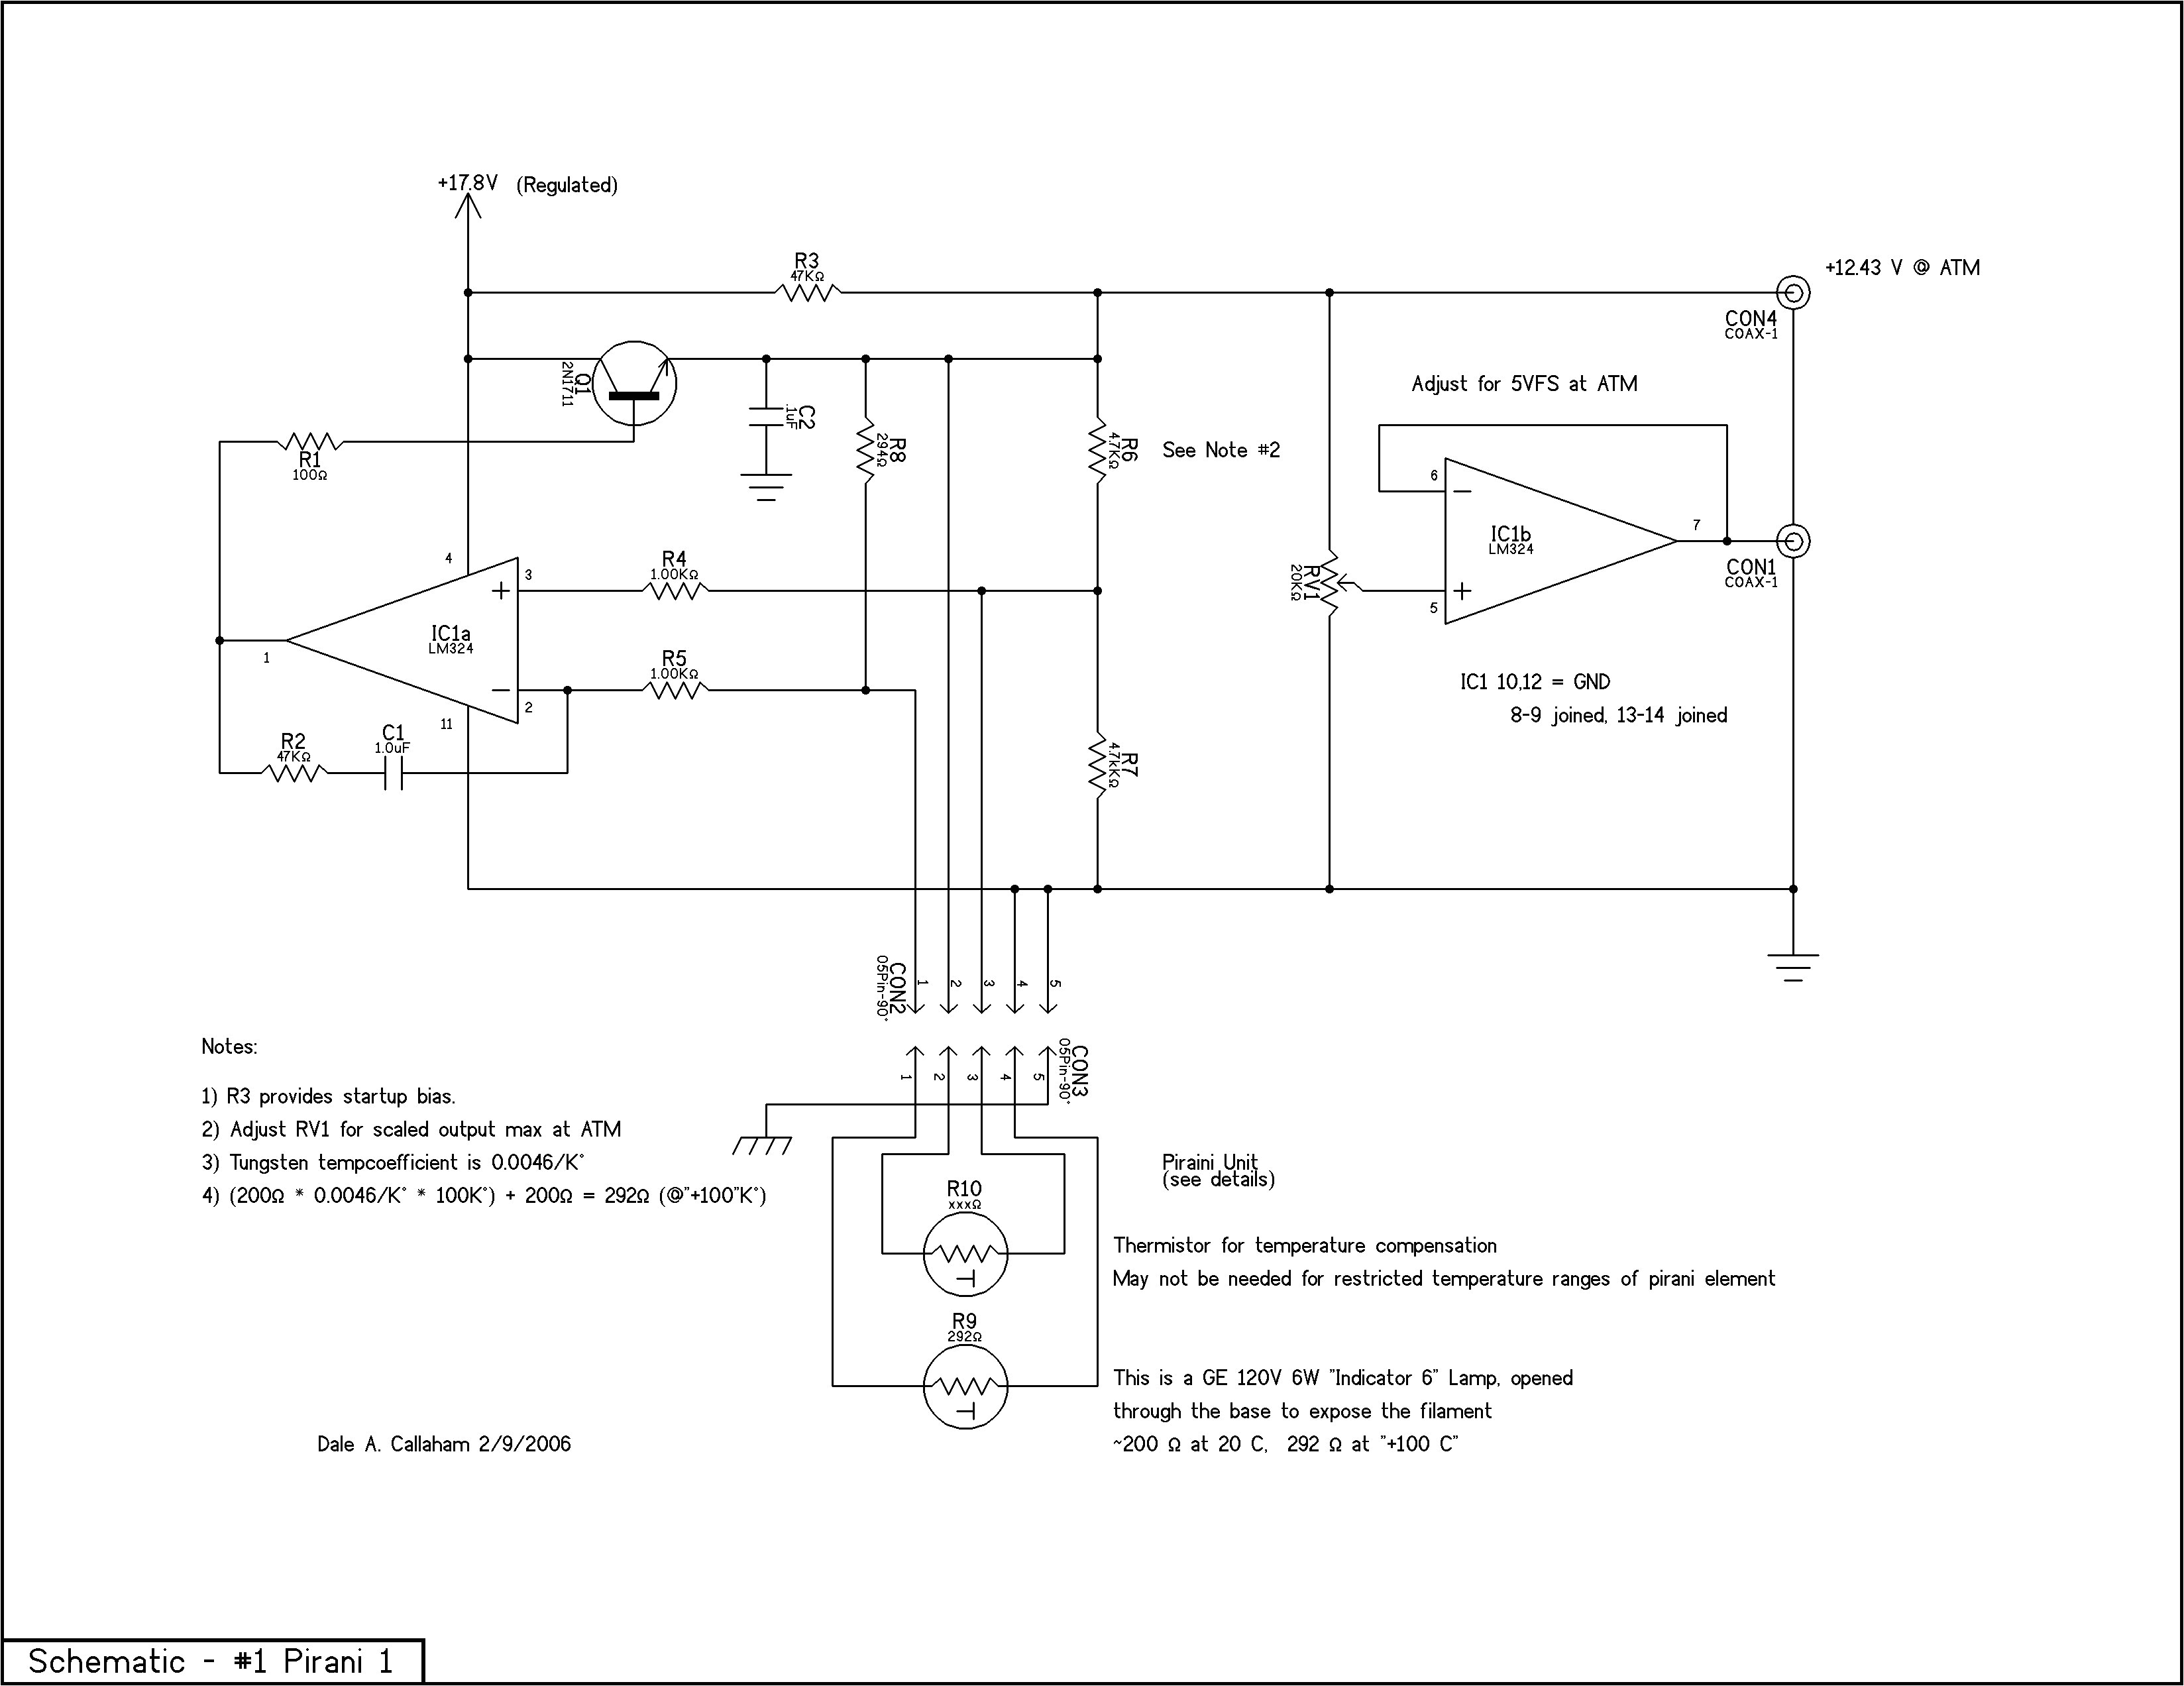 house electrical plan elegant house wiring diagram electrical floor plan 2004 2010 bmw x3 e83 3 0d of house electrical plan jpg